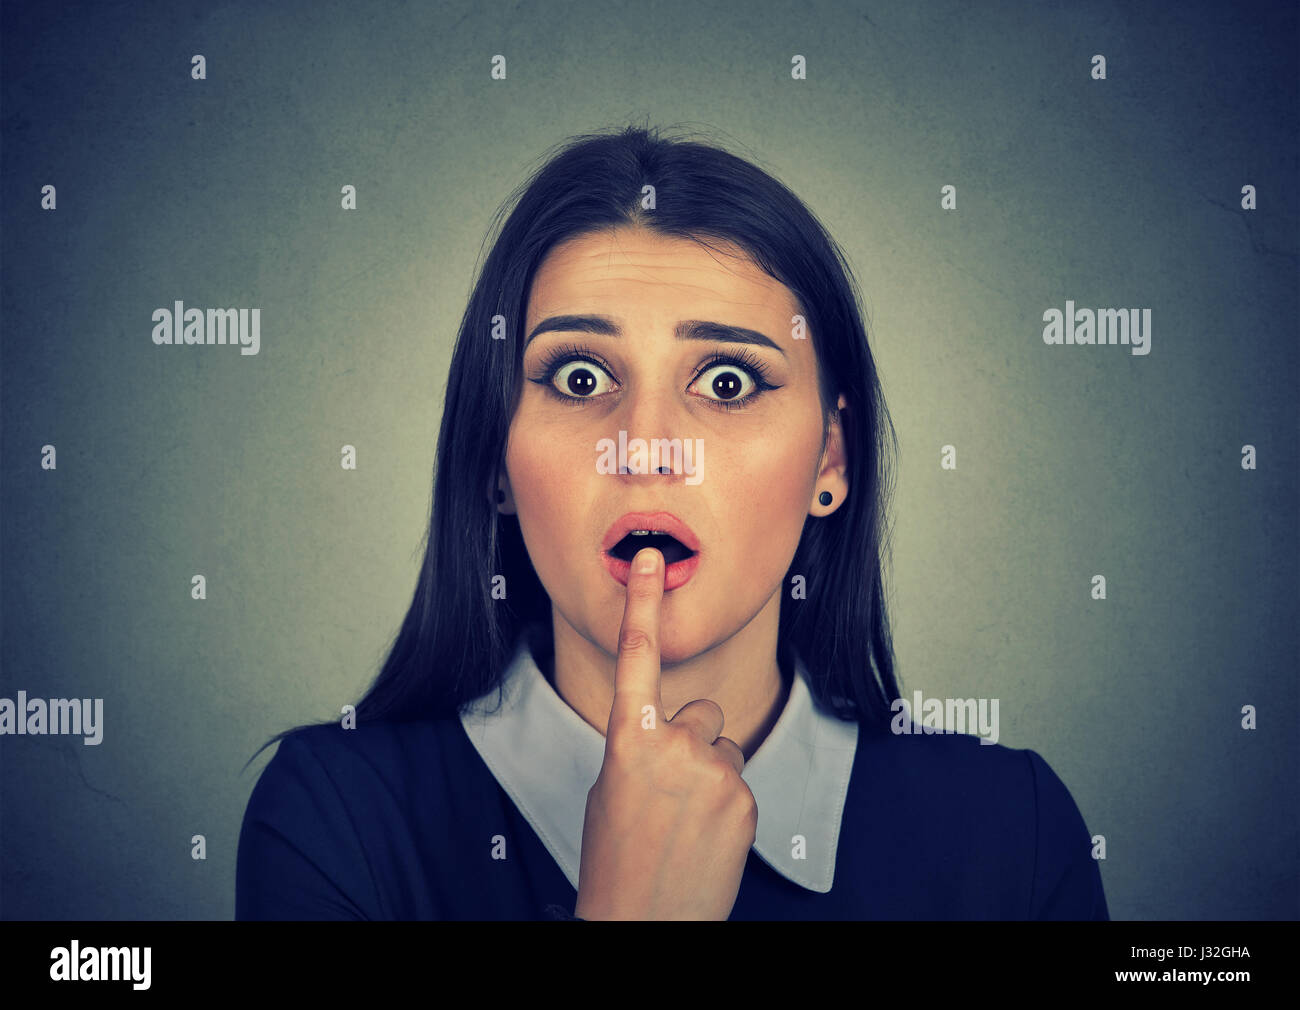 surprised girl - Stock Image